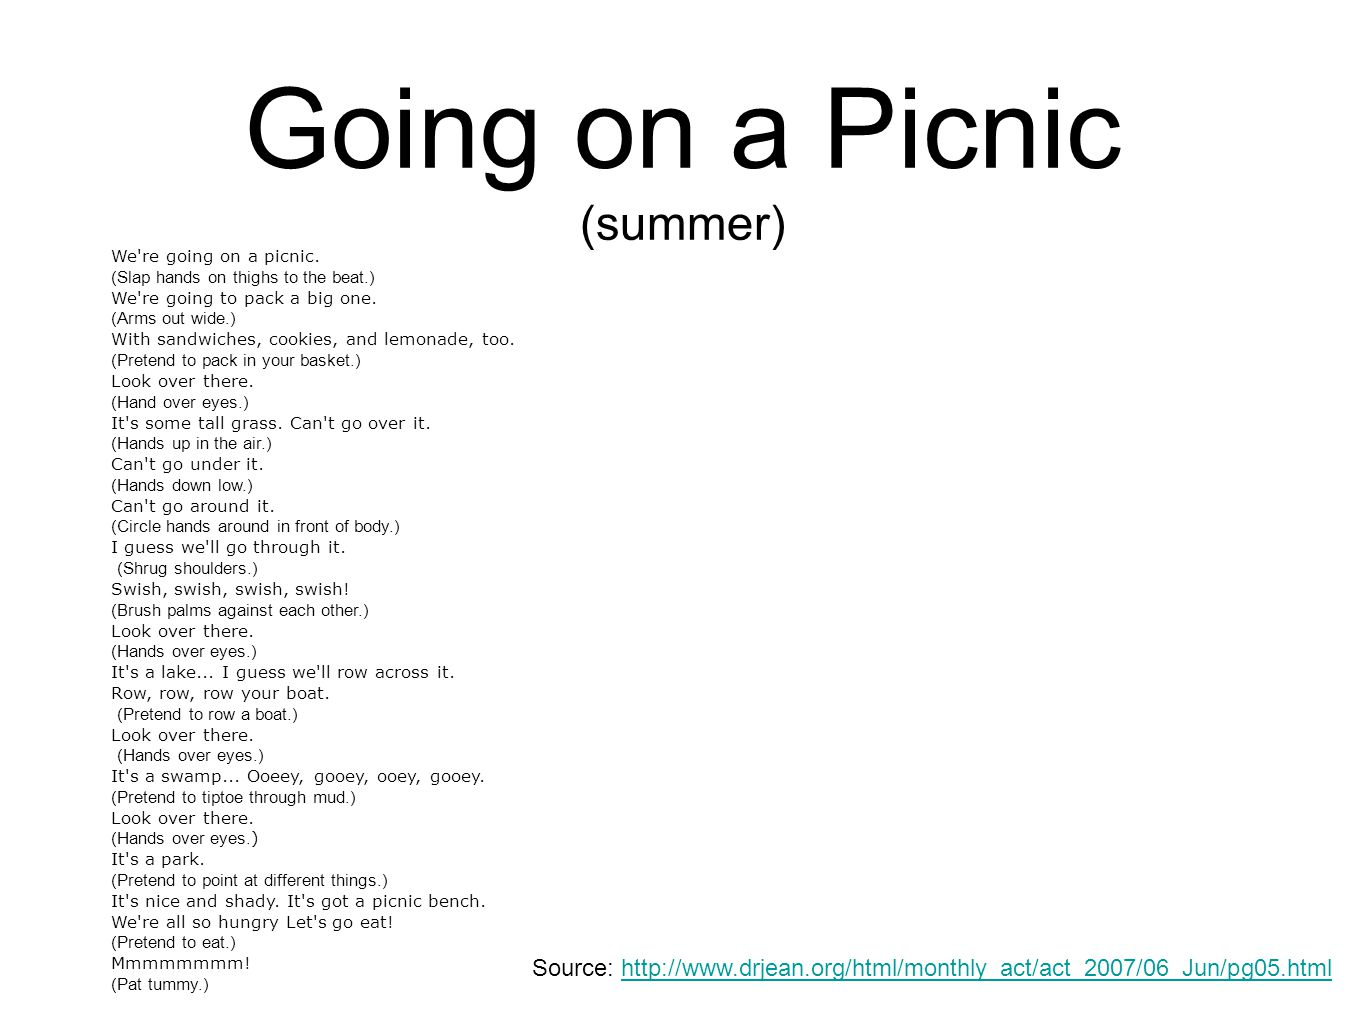 Going on a Picnic (summer)